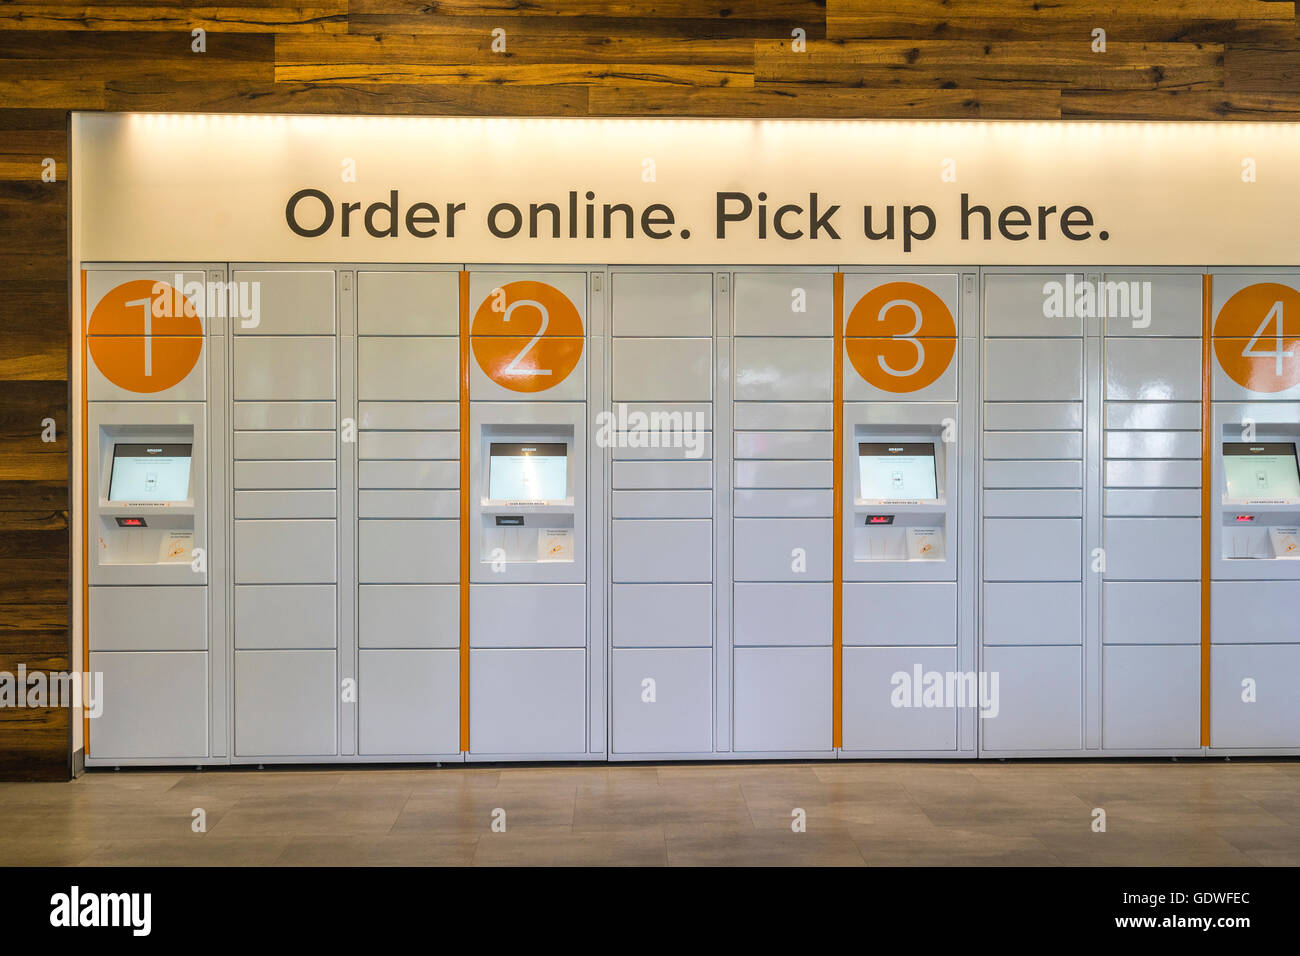 Amazon Lockers for picking up packages ordered online - Stock Image